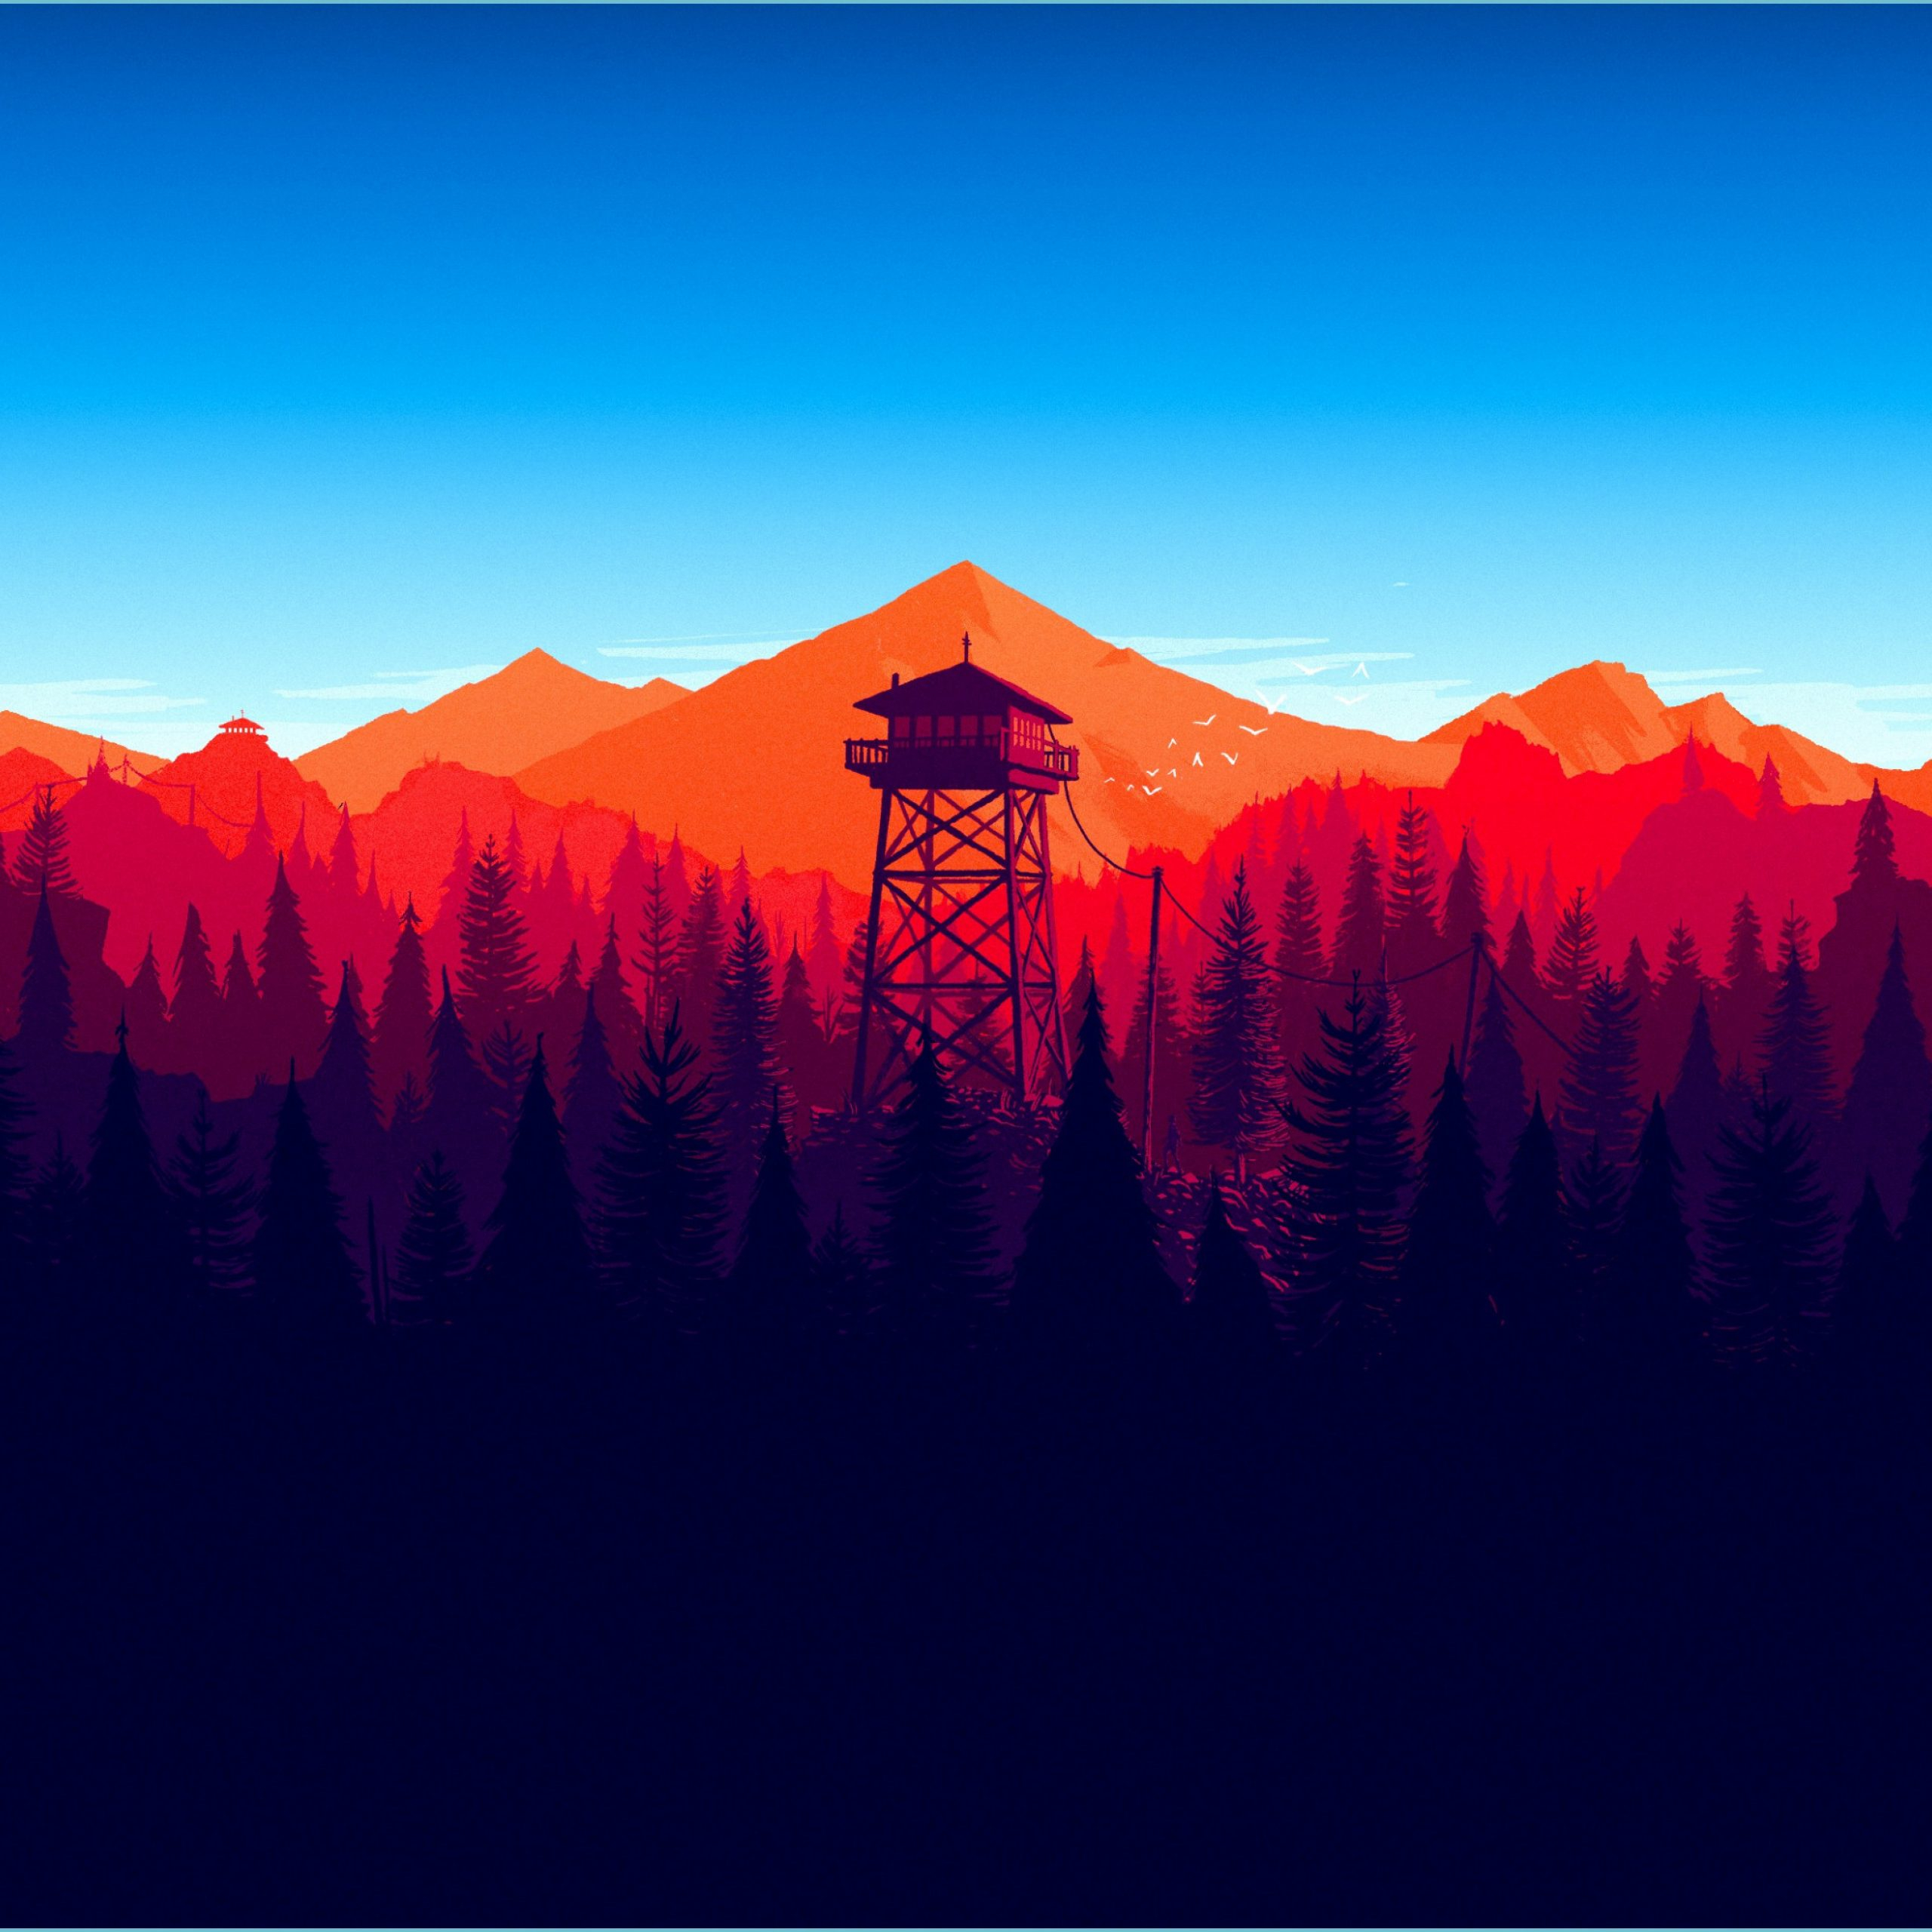 firewatch 13k wallpapers for your desktop or mobile screen free and puter wallpaper 4k